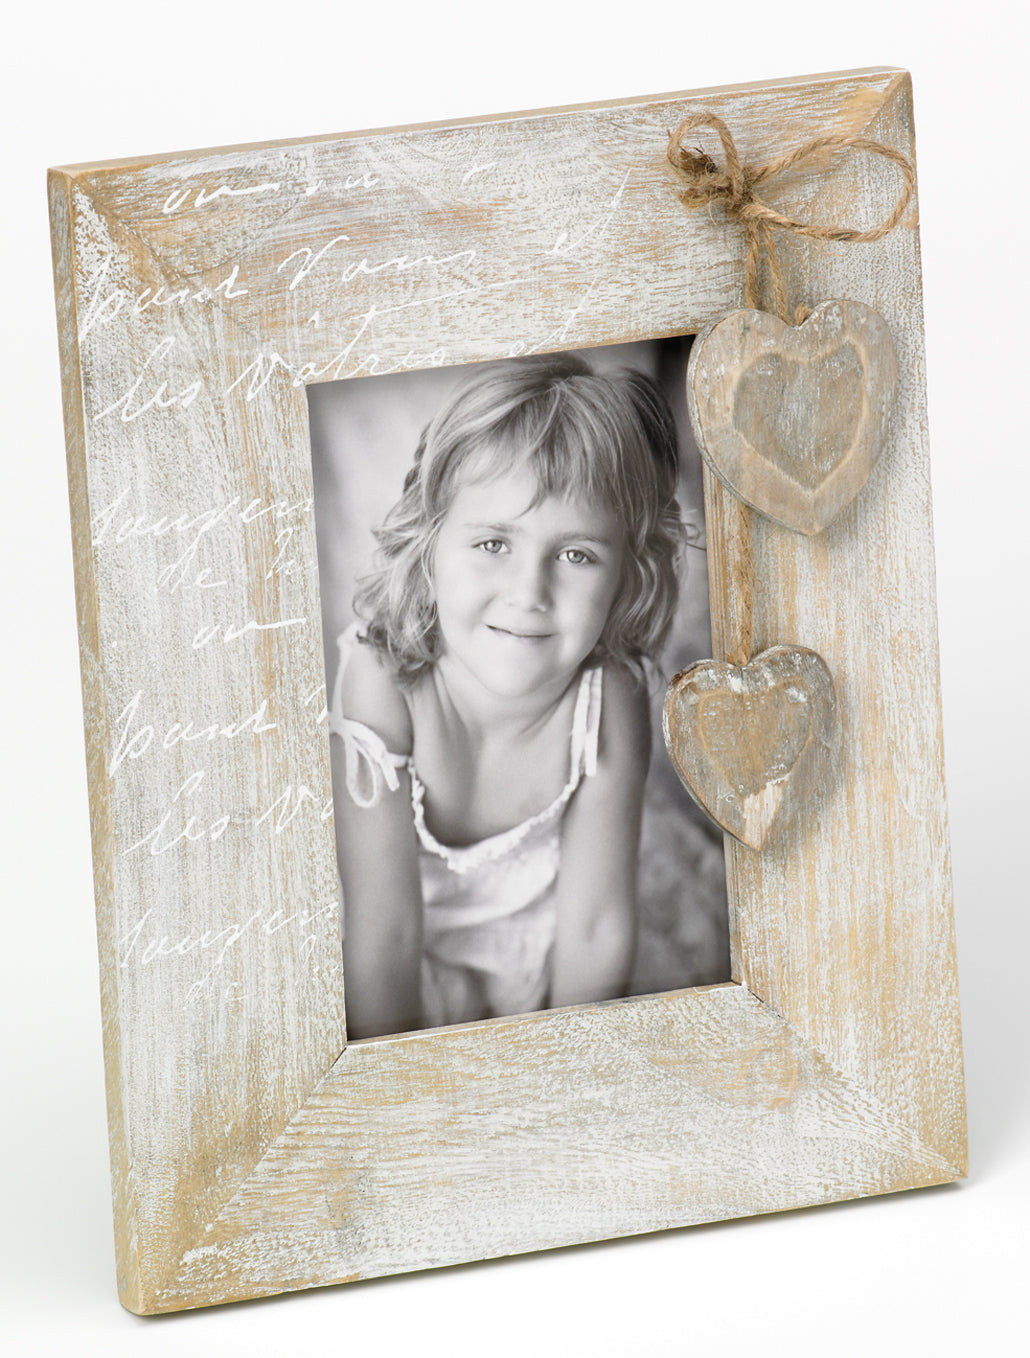 LeCoeur timber photo frame 13x18cm / 7x5